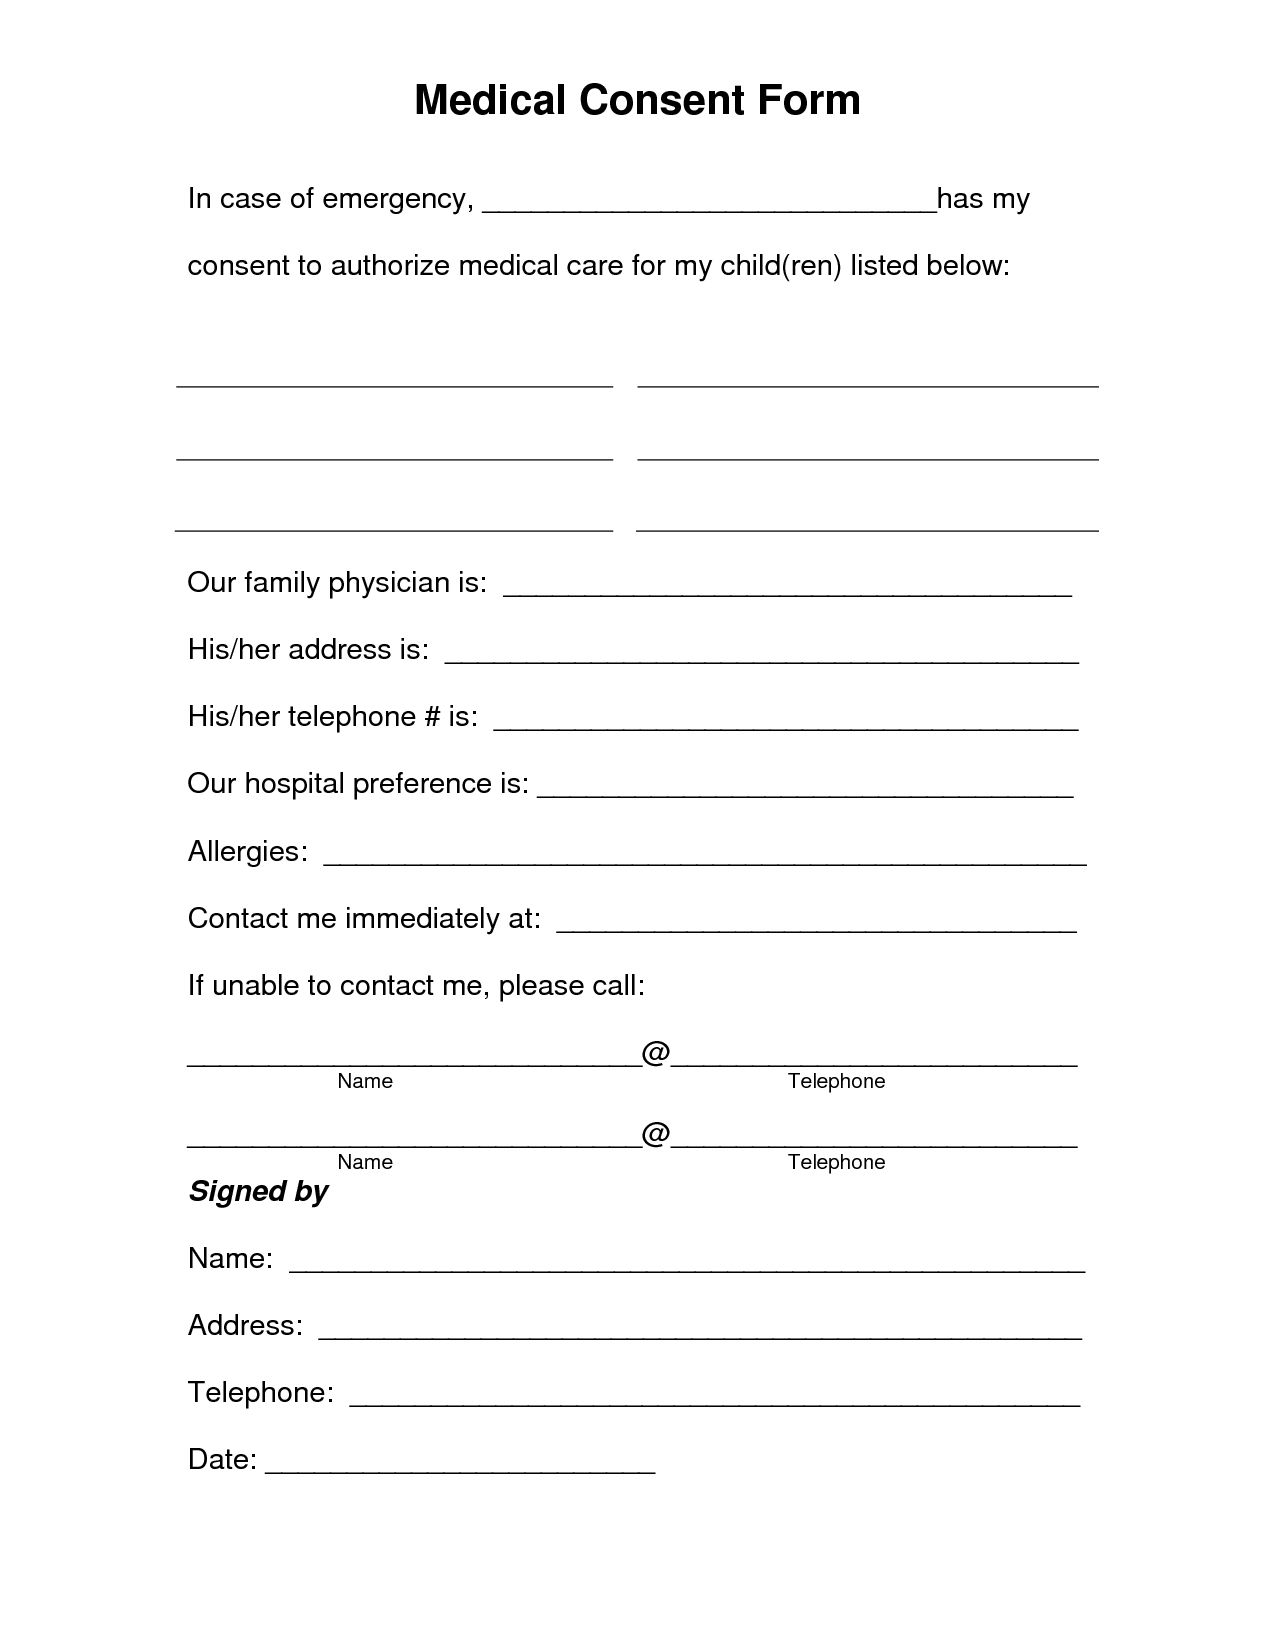 Free Printable Medical Consent Form   Free Medical Consent Form - Free Printable Medical Release Form